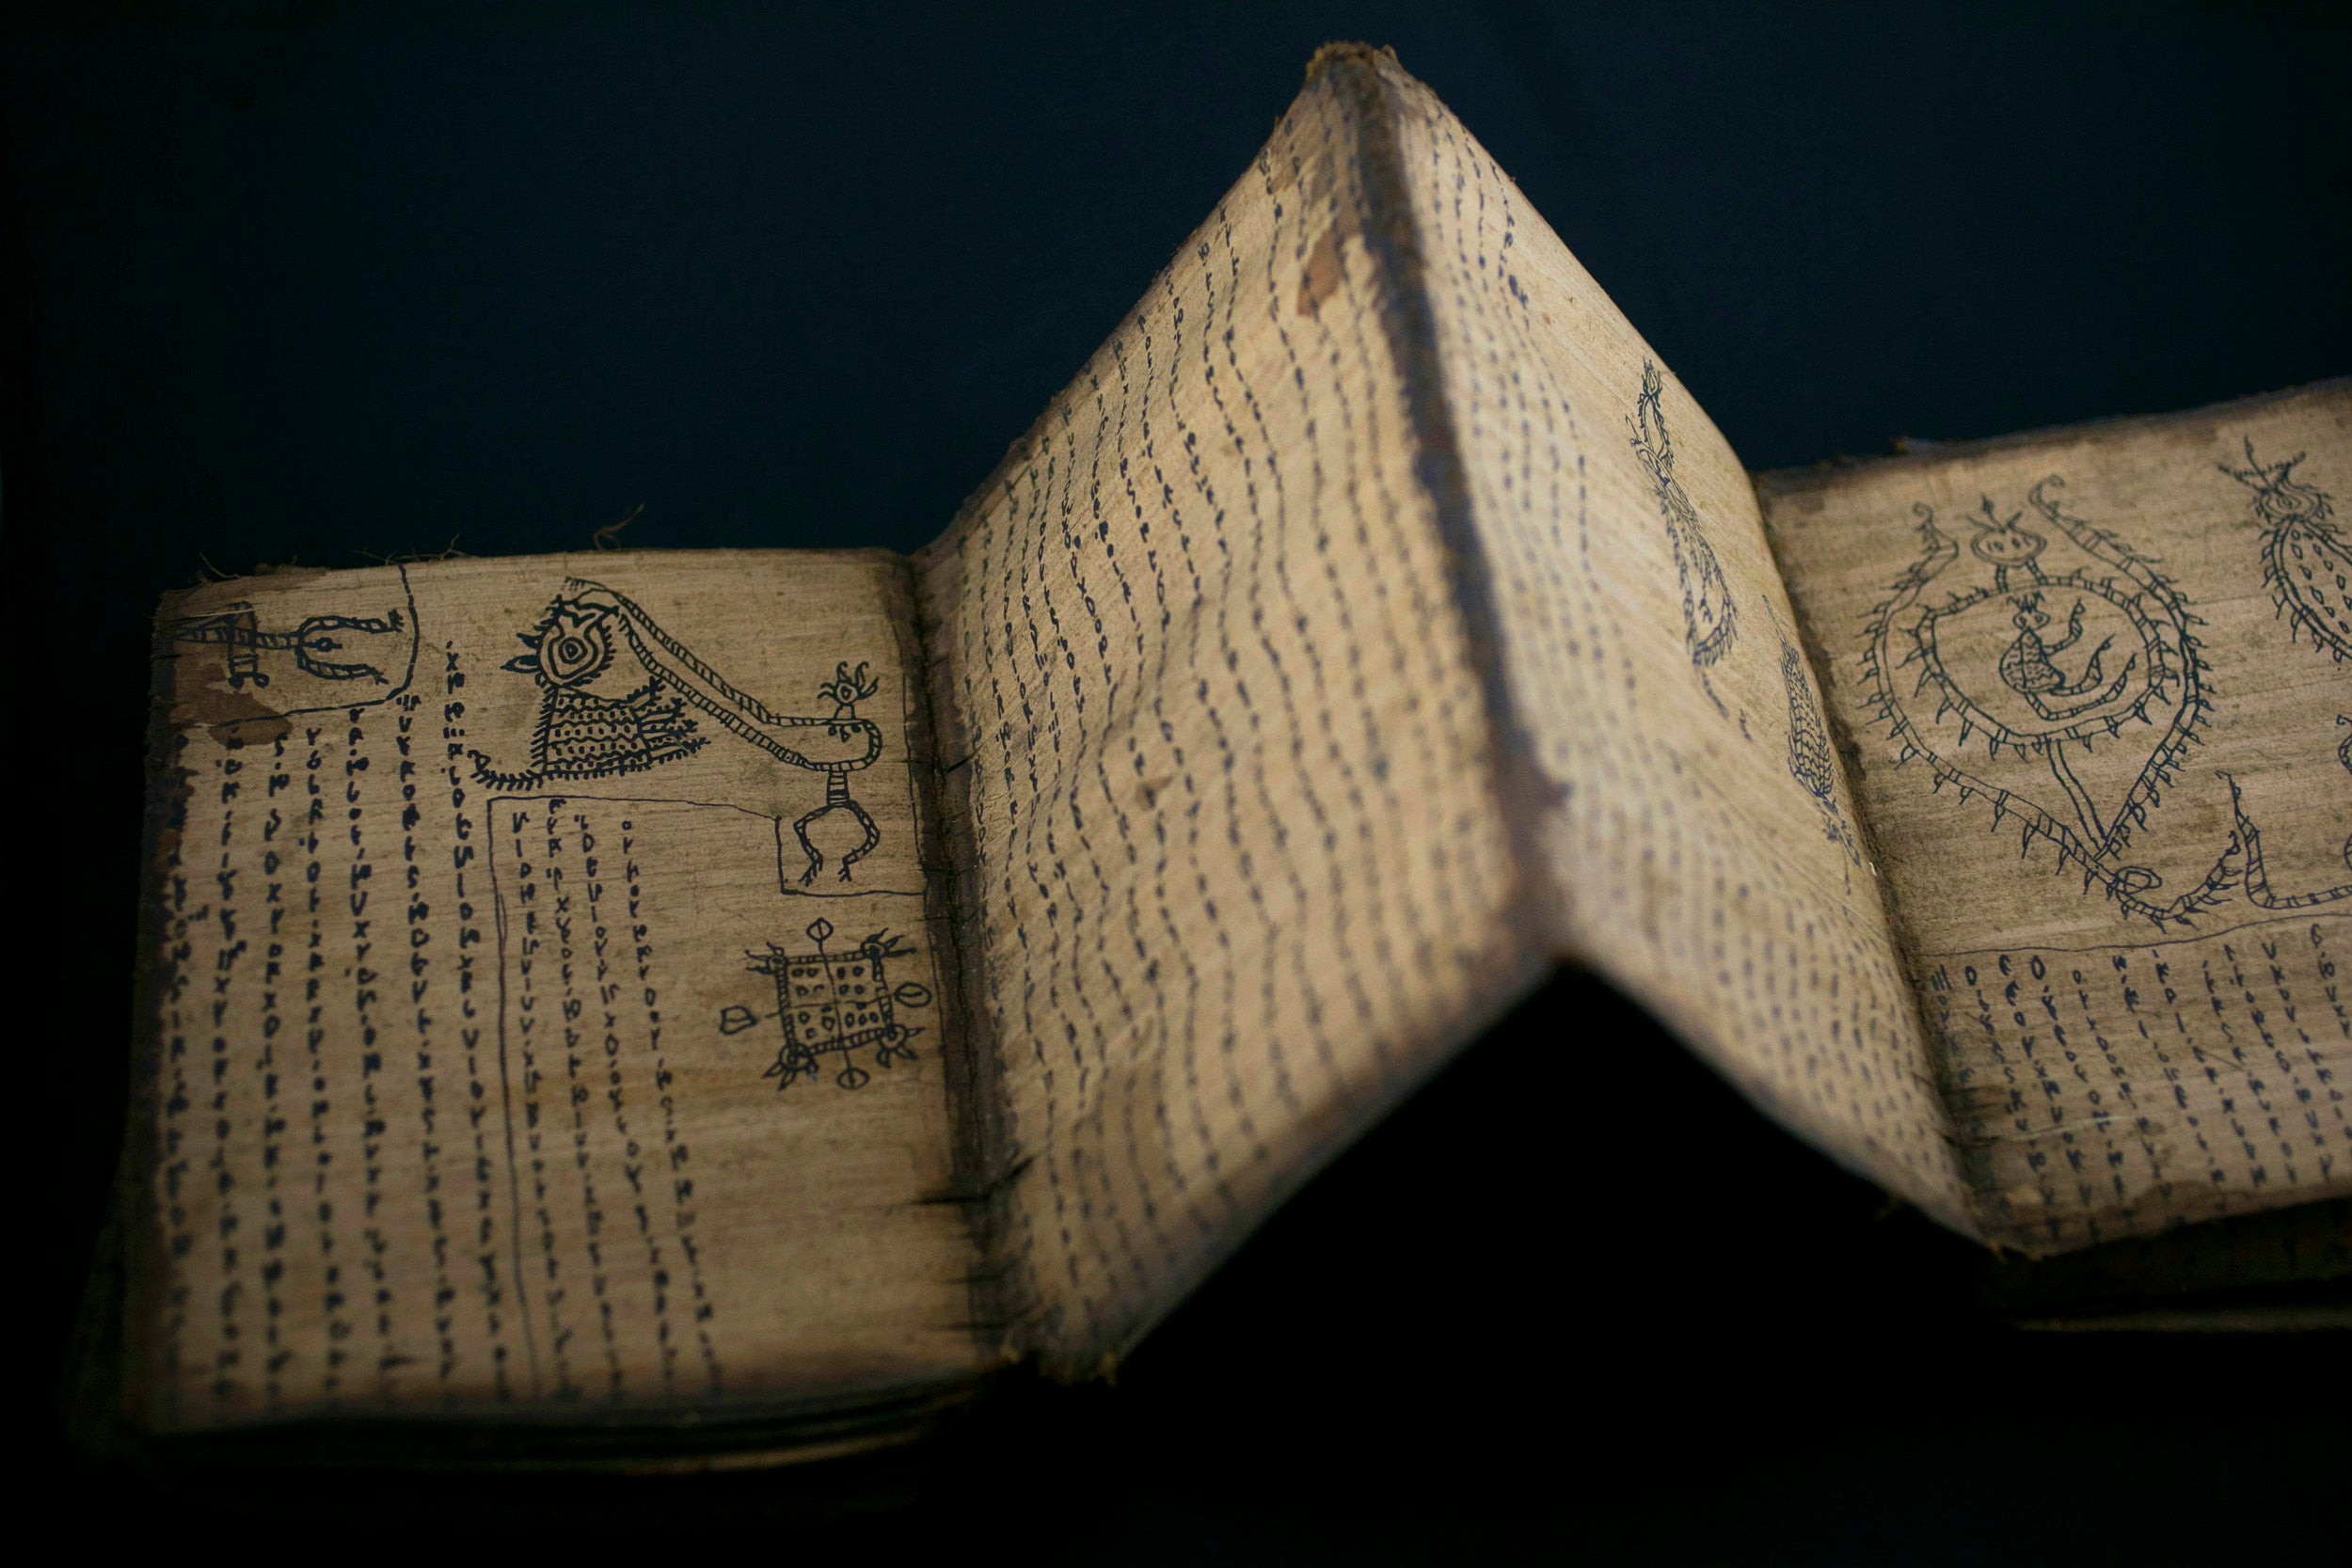 Batak accordion book of spells.